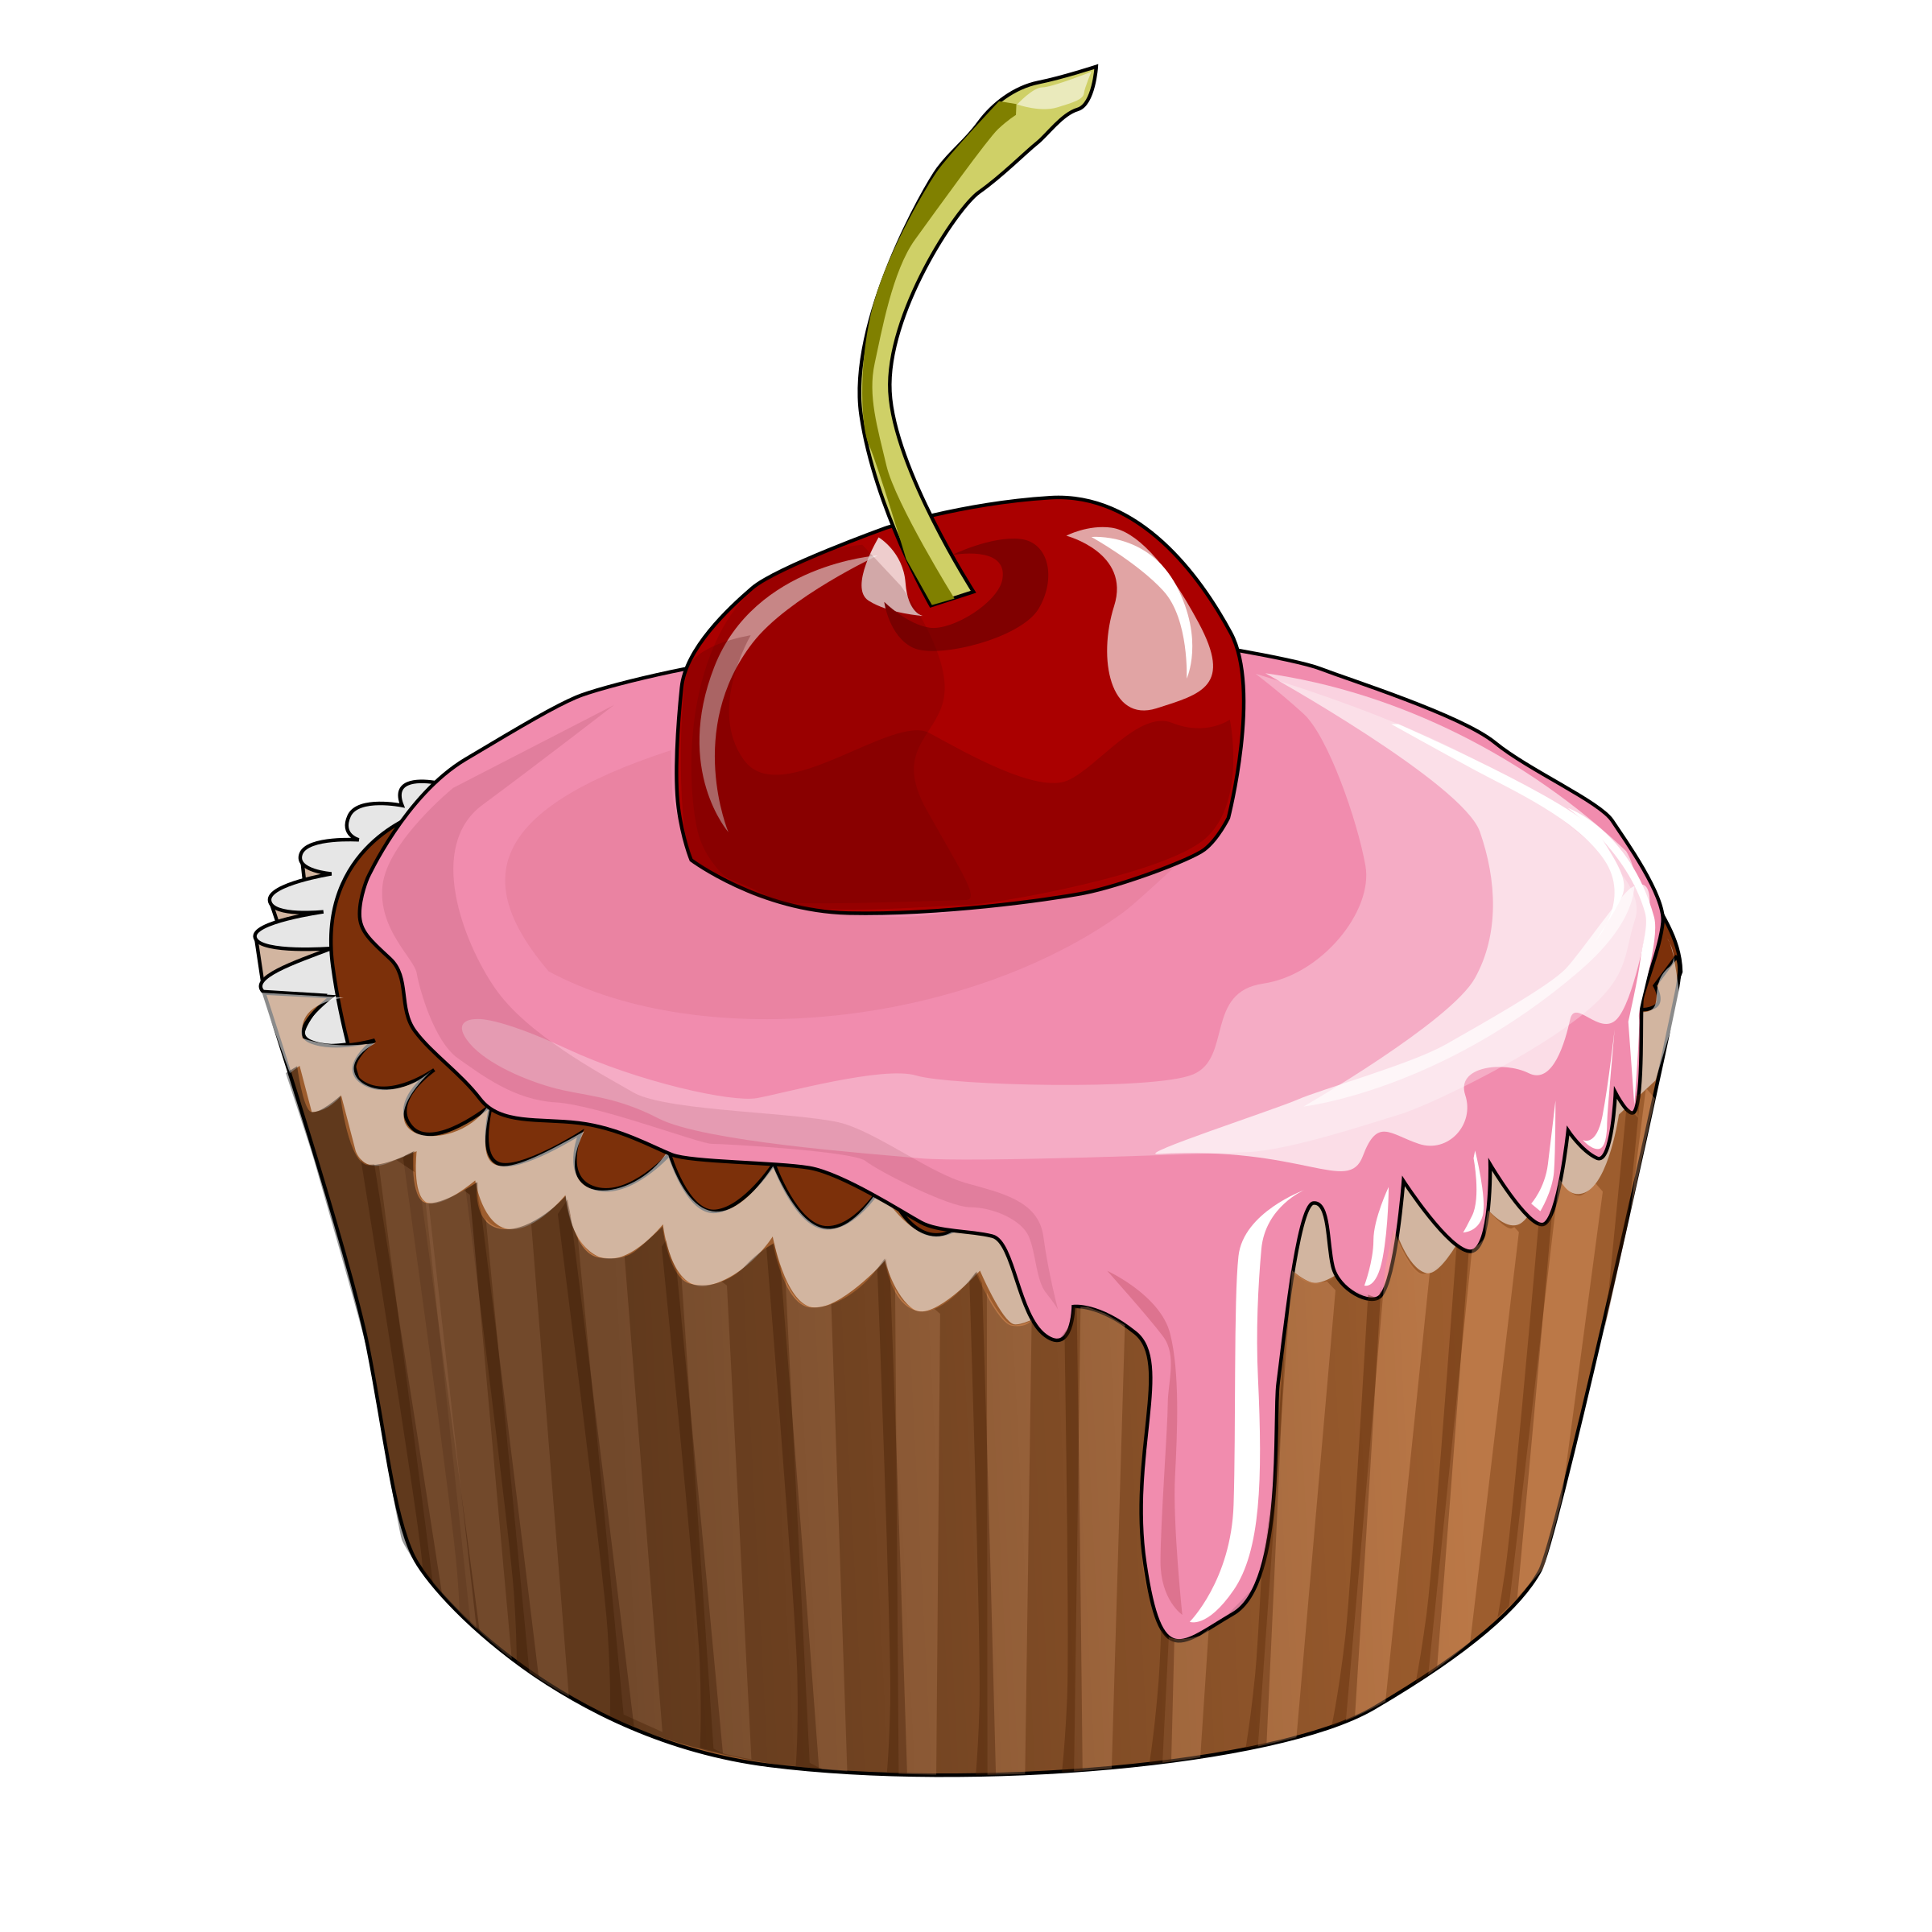 Cherry Cupcake by bktheman